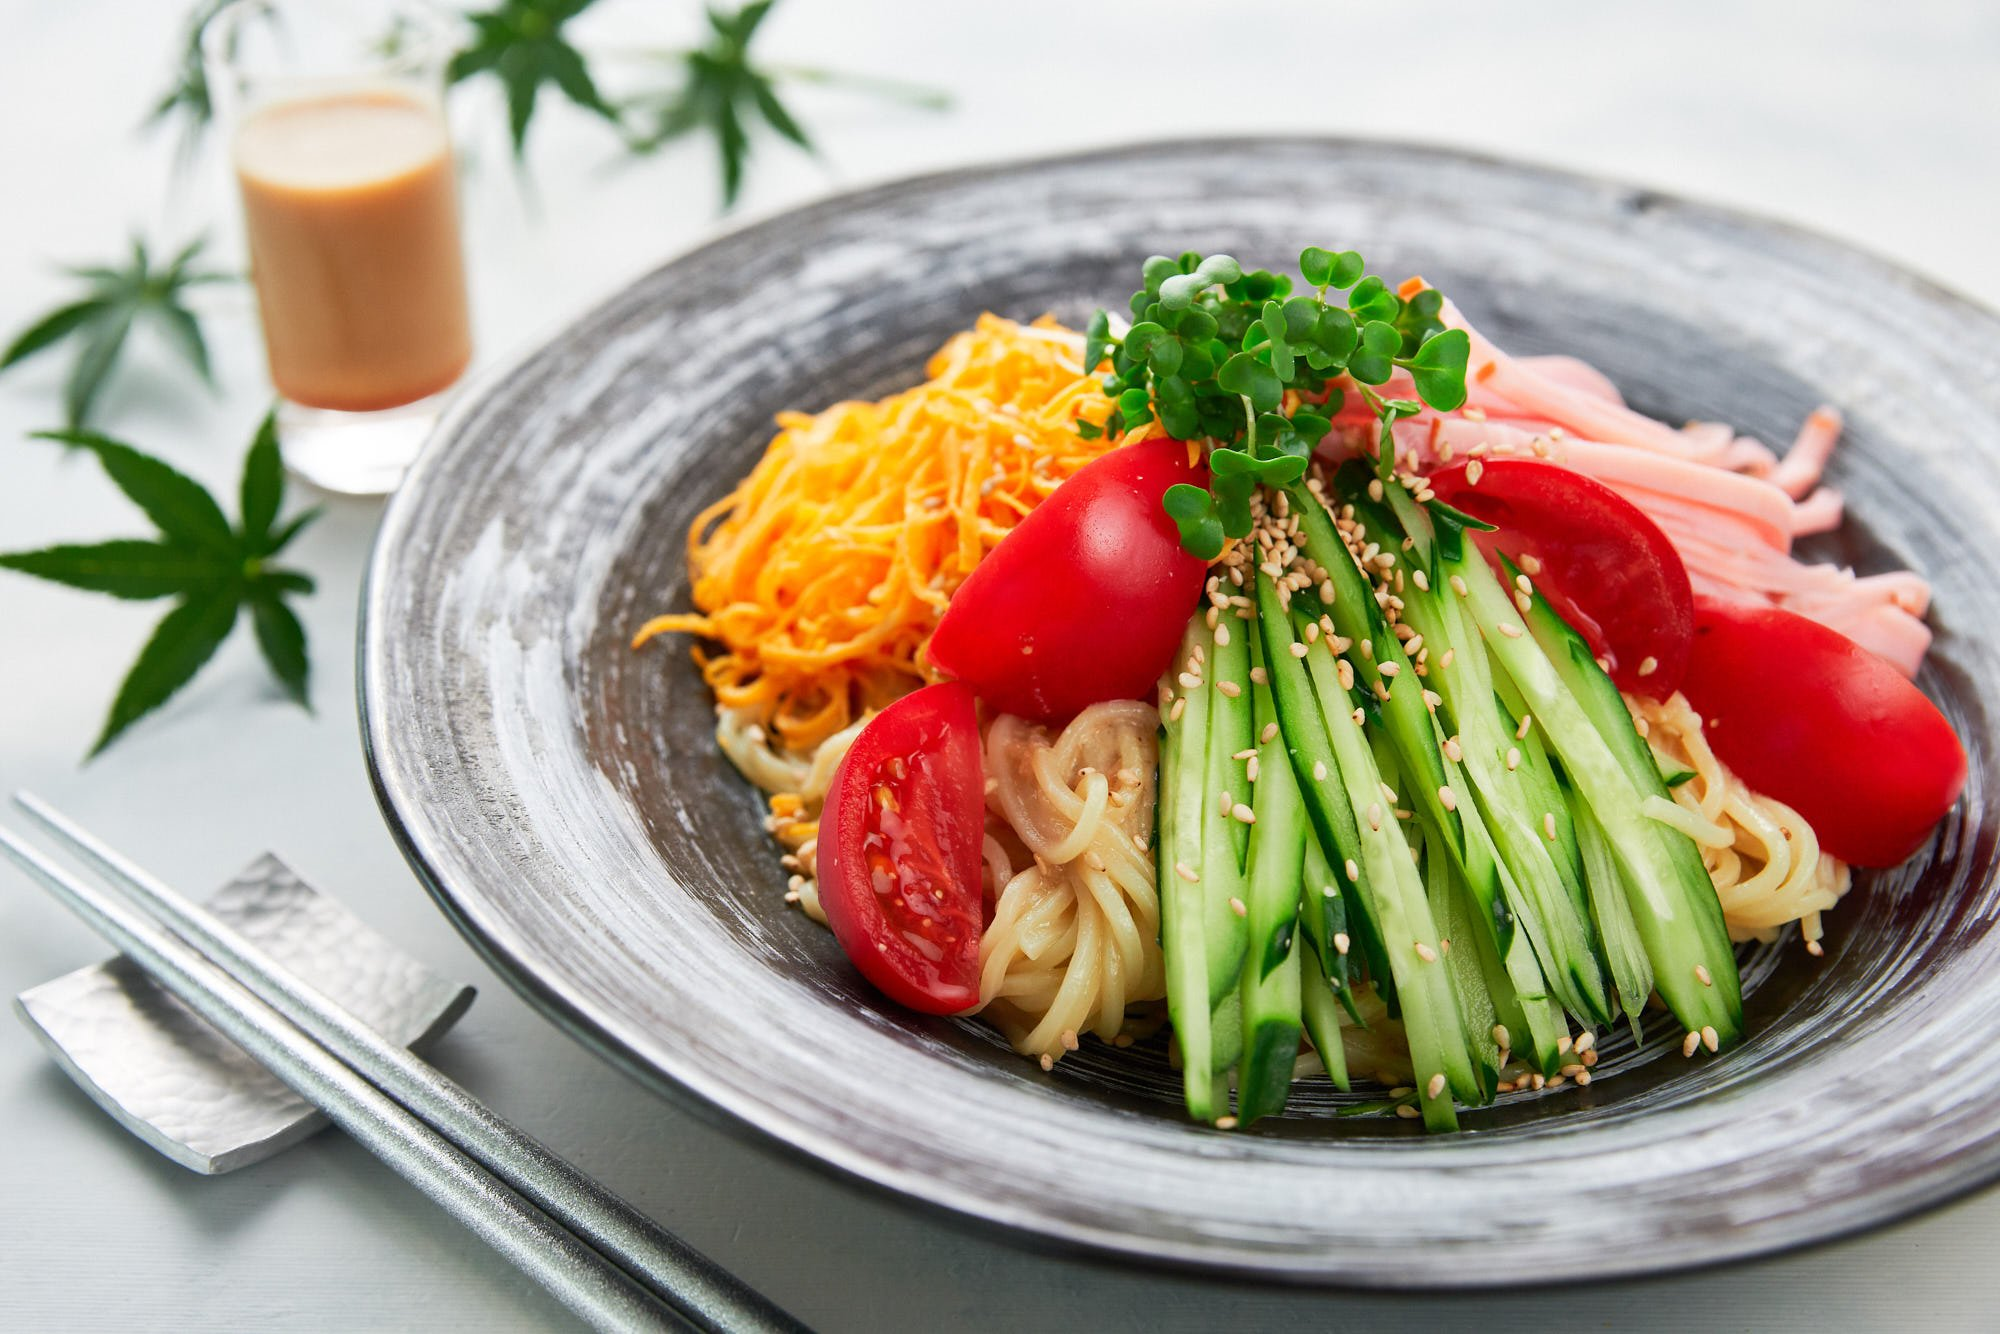 With chilled ramen noodles and loads of veggies dressed with a tangy sesame dresing, this cold ramen salad (Hiyashichuka) is perfect for a hot summer day.